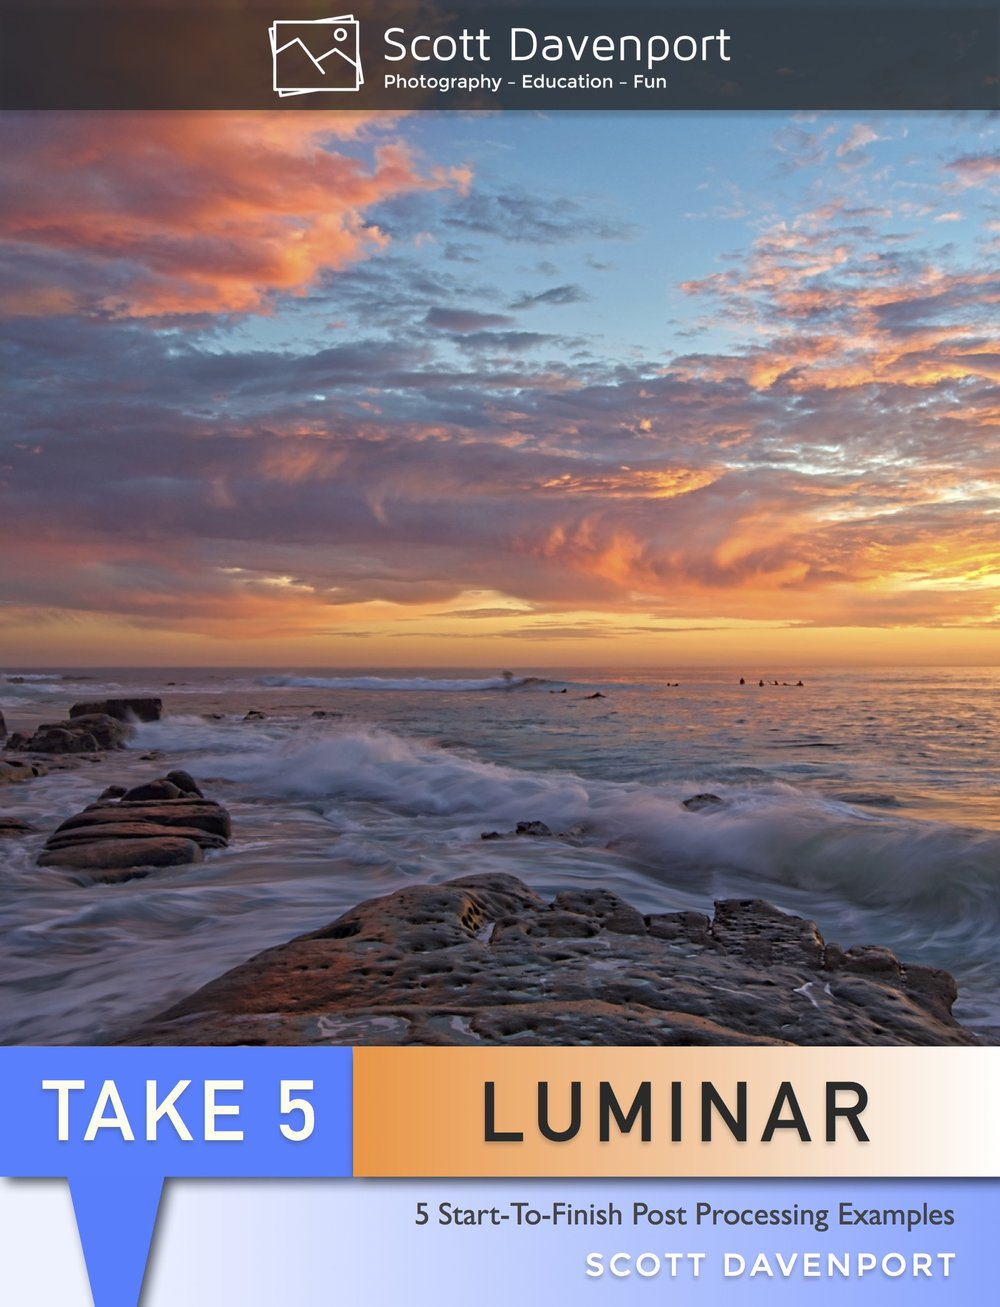 Take-5-Luminar-Scott-Davenport-Cover.jpg